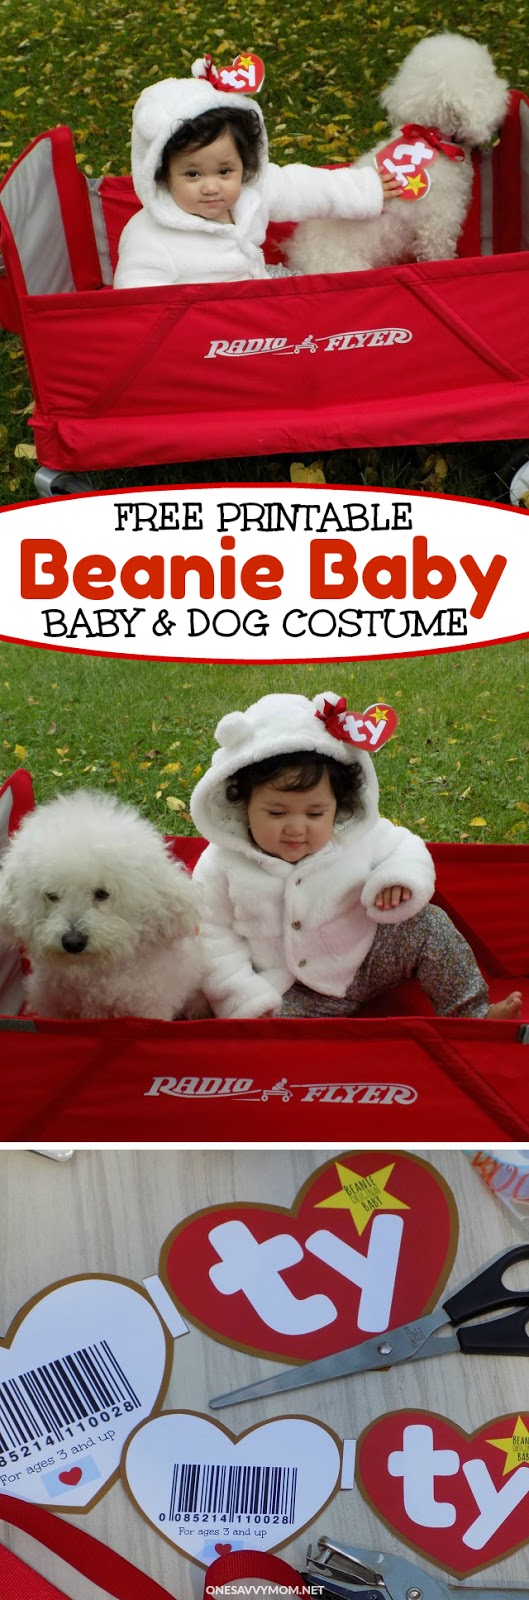 i cant wait to see all of the entries so much cuteness for sure what are your little ones and pets going to be for halloween this year